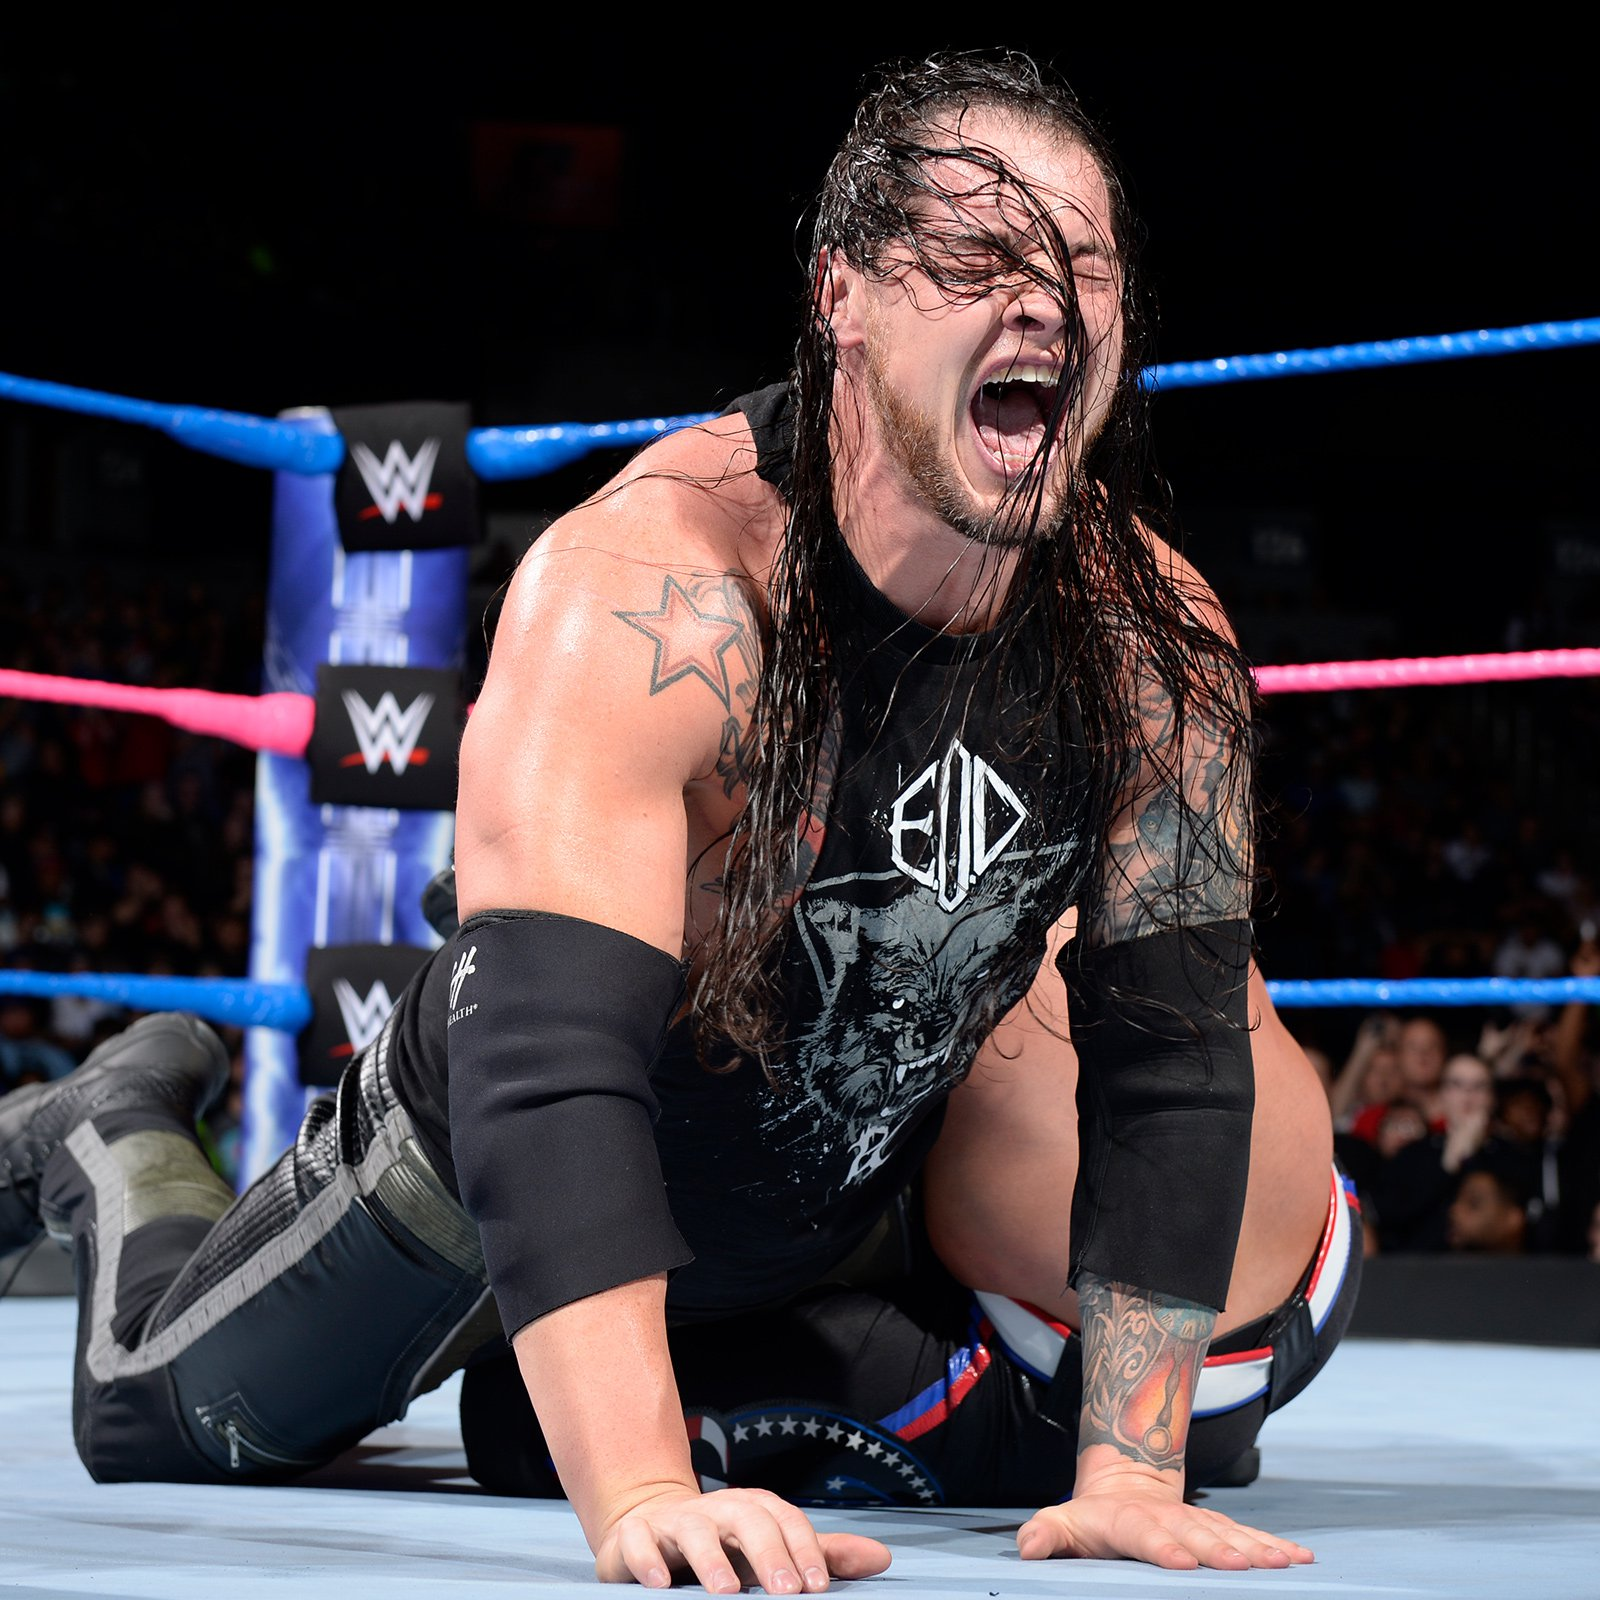 Styles locks Corbin in the Calf Crusher, but The Lone Wolf escapes by slamming AJ's head off the canvas.